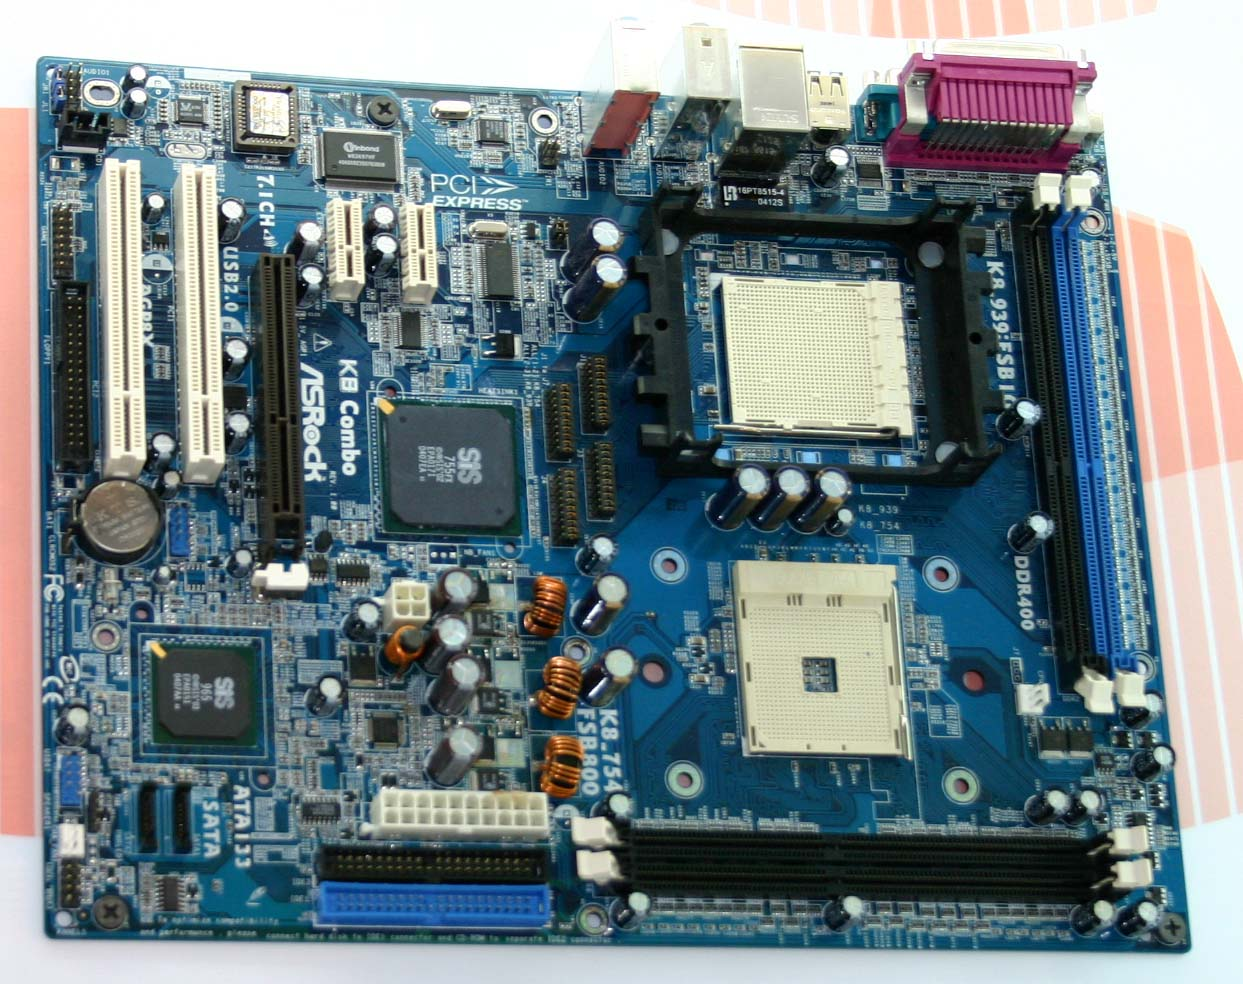 WINFAST 761GXK8MB MOTHERBOARD DRIVER FOR WINDOWS 7